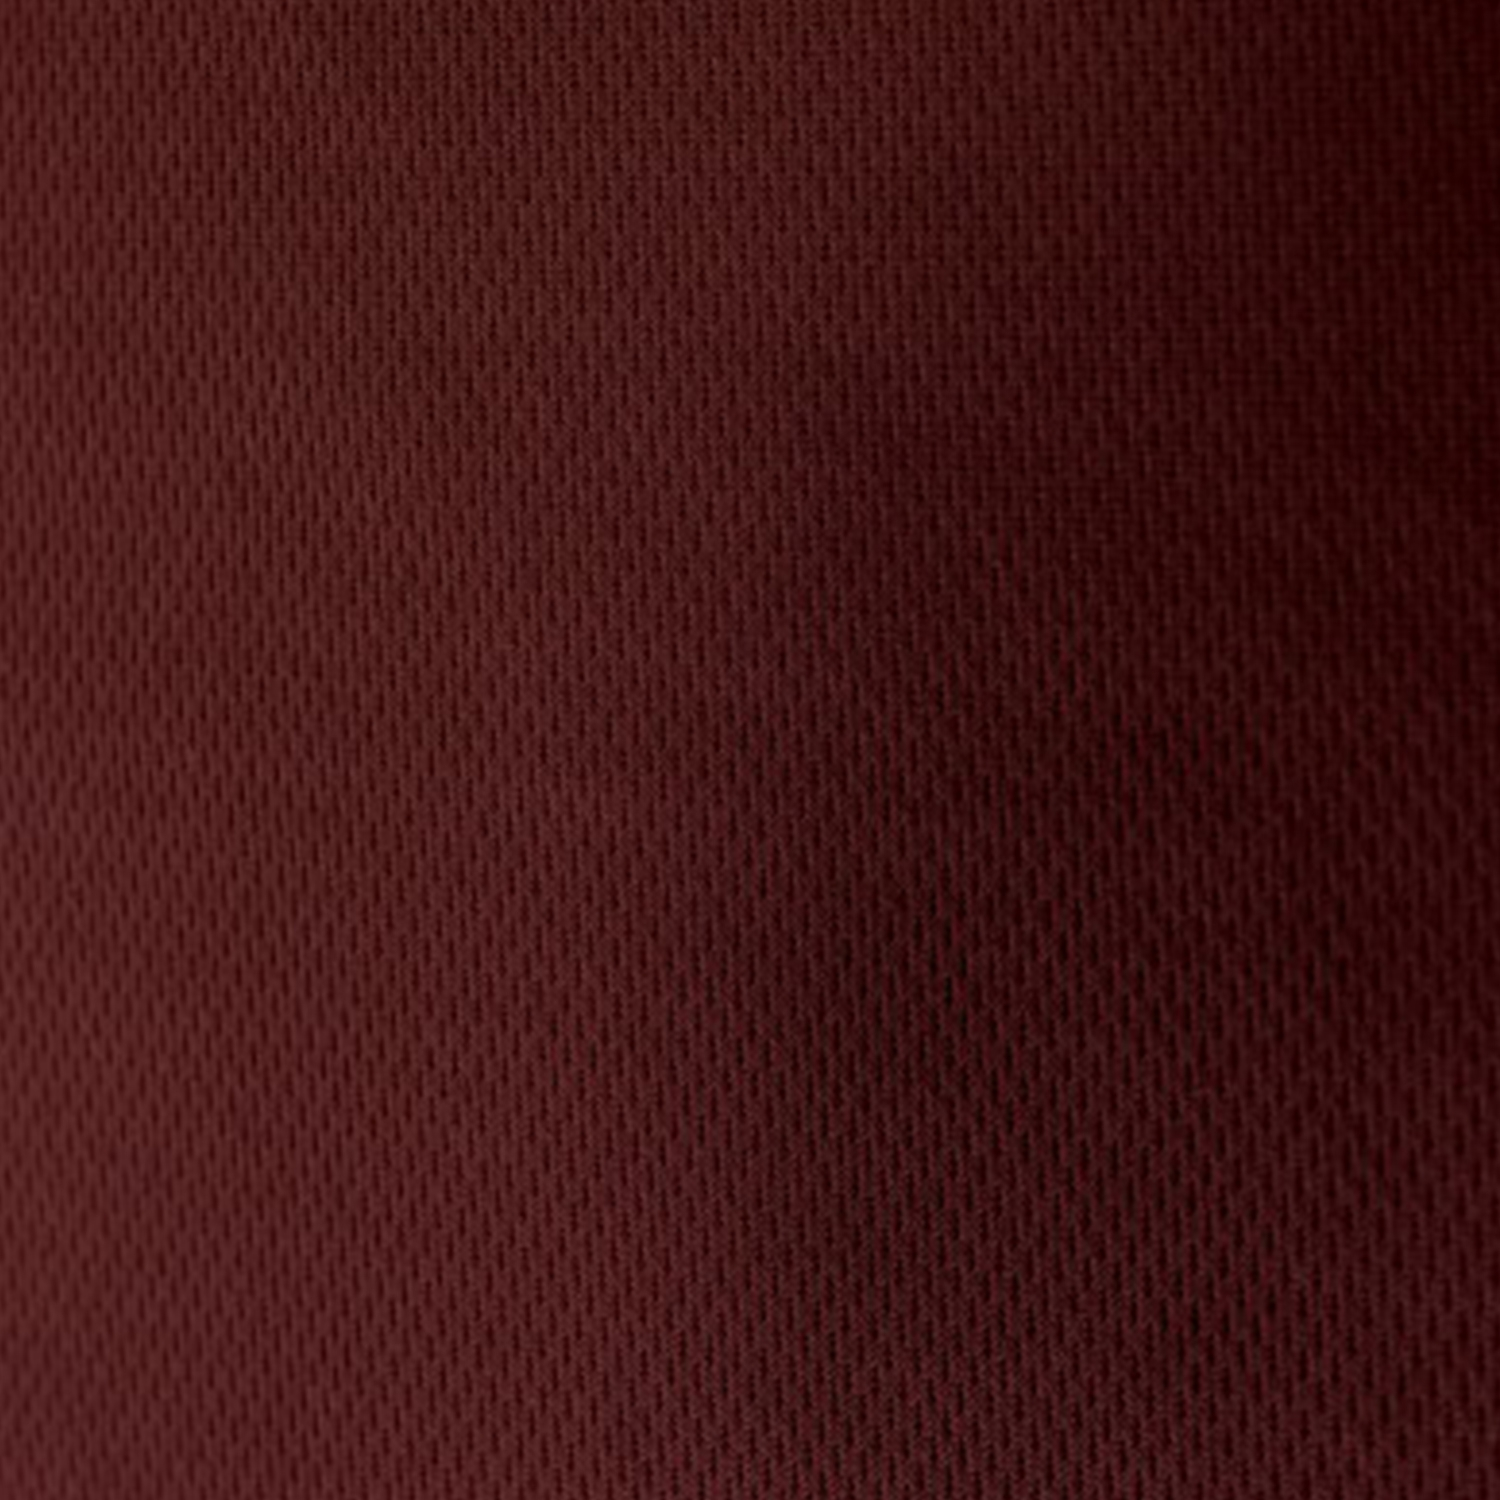 Maroon Flat Back Dimple Mesh Fabric